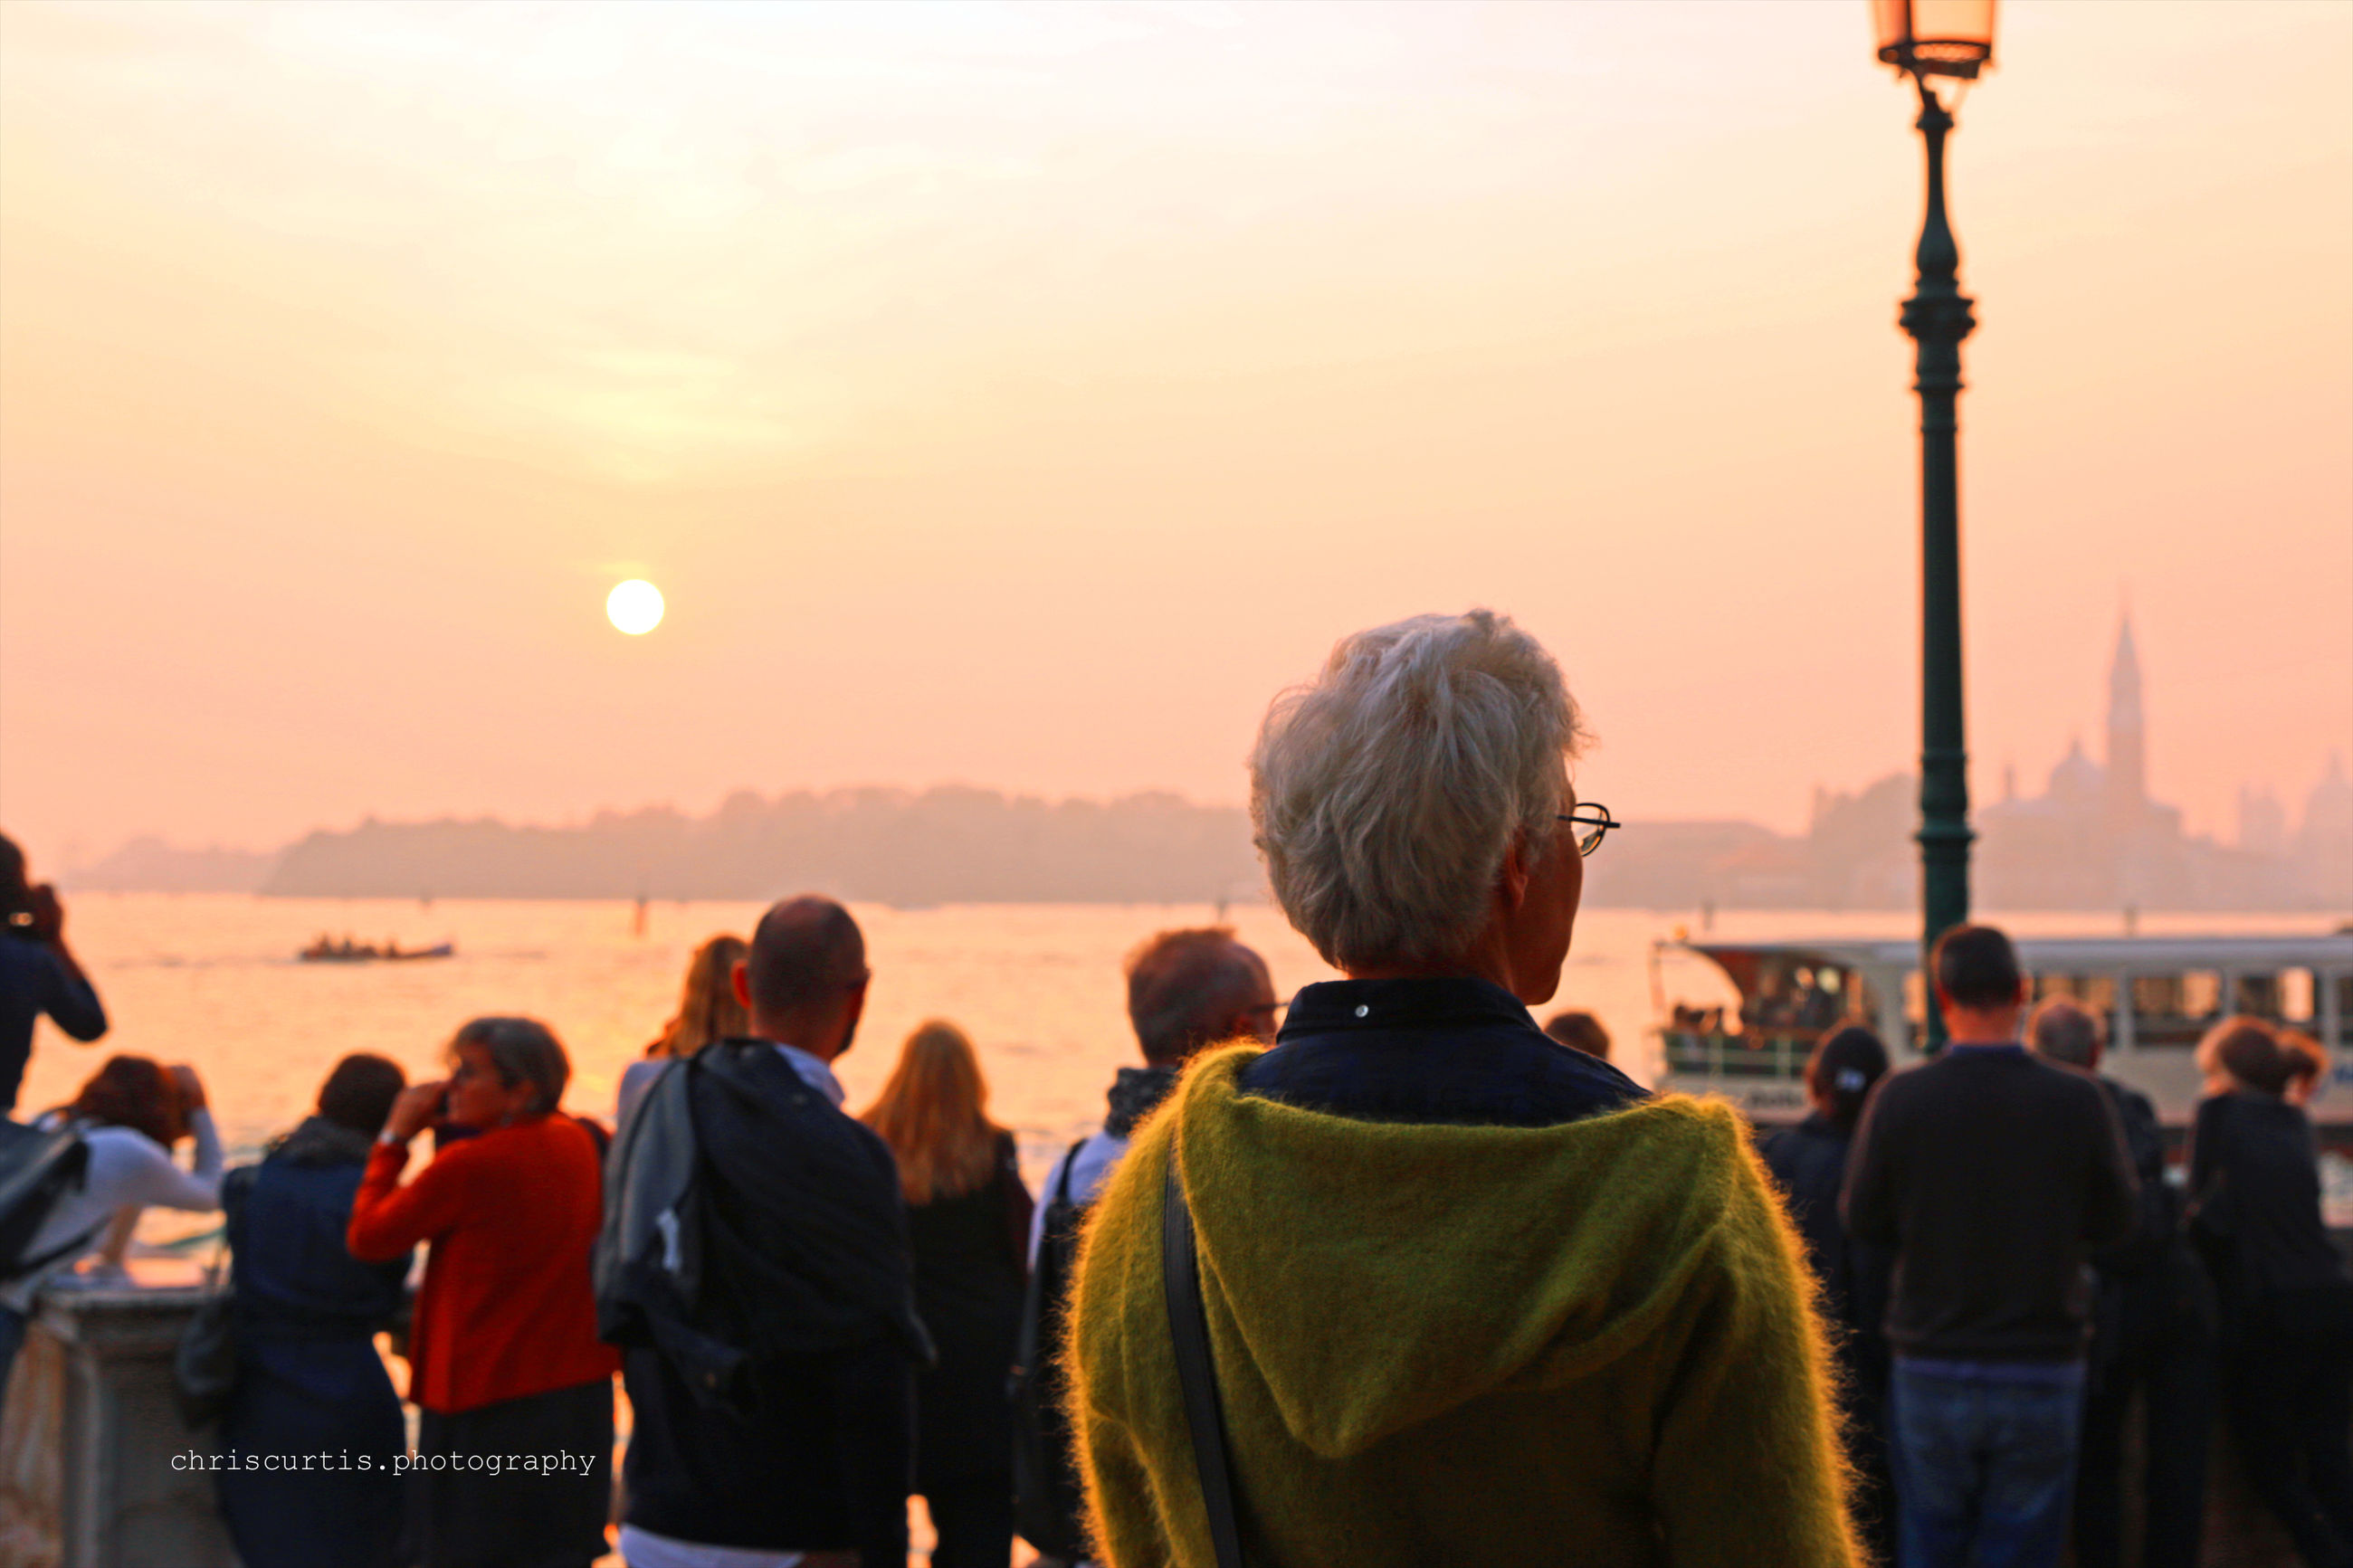 sunset, real people, orange color, large group of people, rear view, leisure activity, men, sky, outdoors, lifestyles, enjoyment, nature, women, togetherness, travel destinations, city, beauty in nature, water, day, adult, people